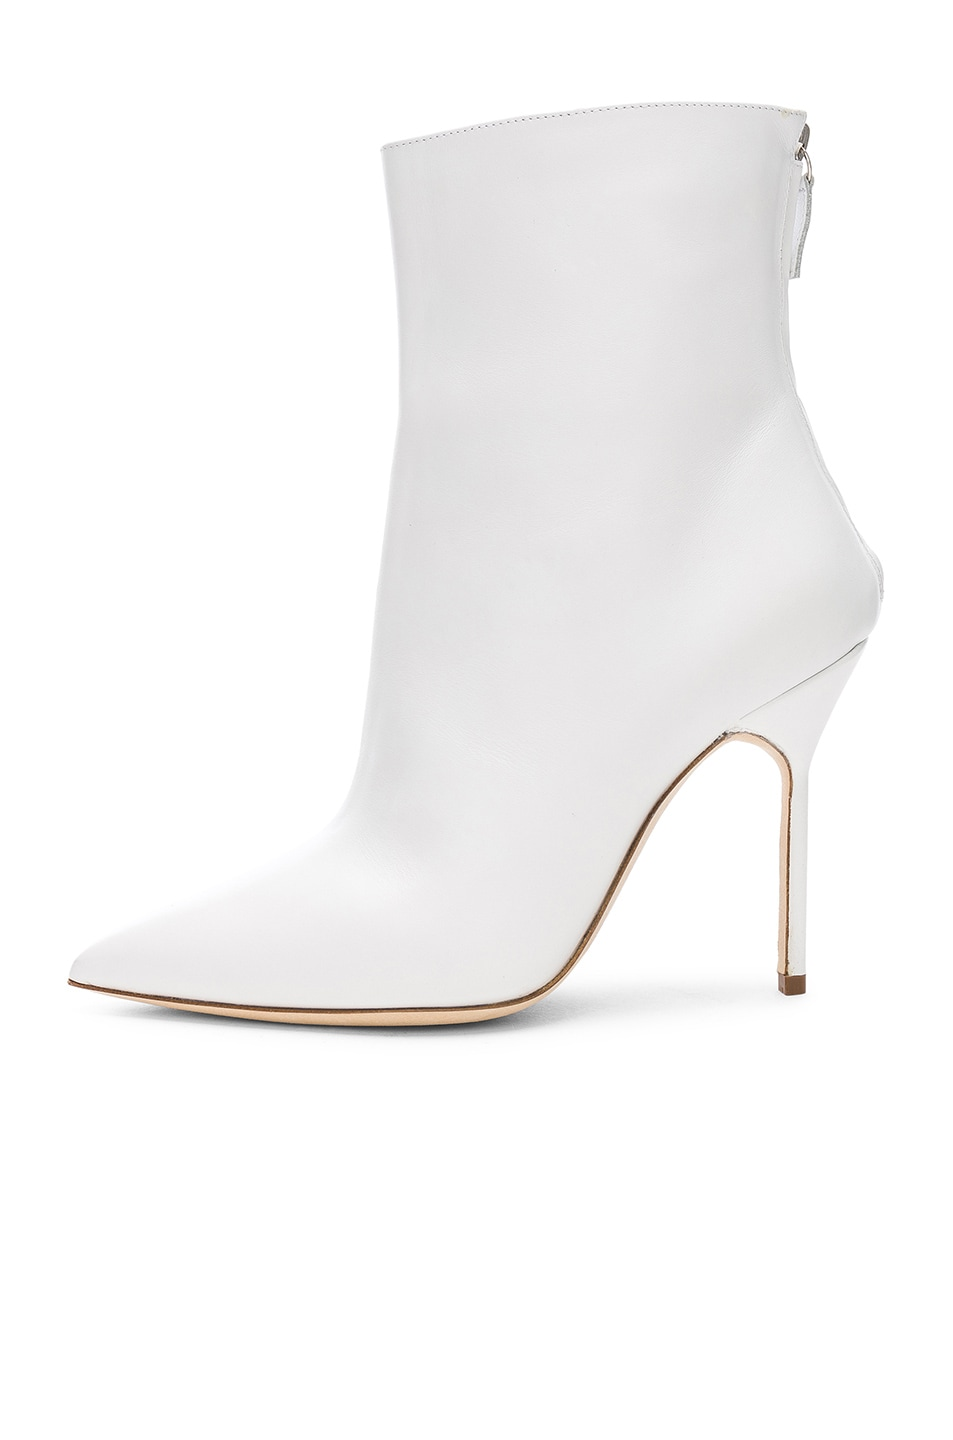 Image 5 of Manolo Blahnik Leather Zarinanu 105 Boots in White